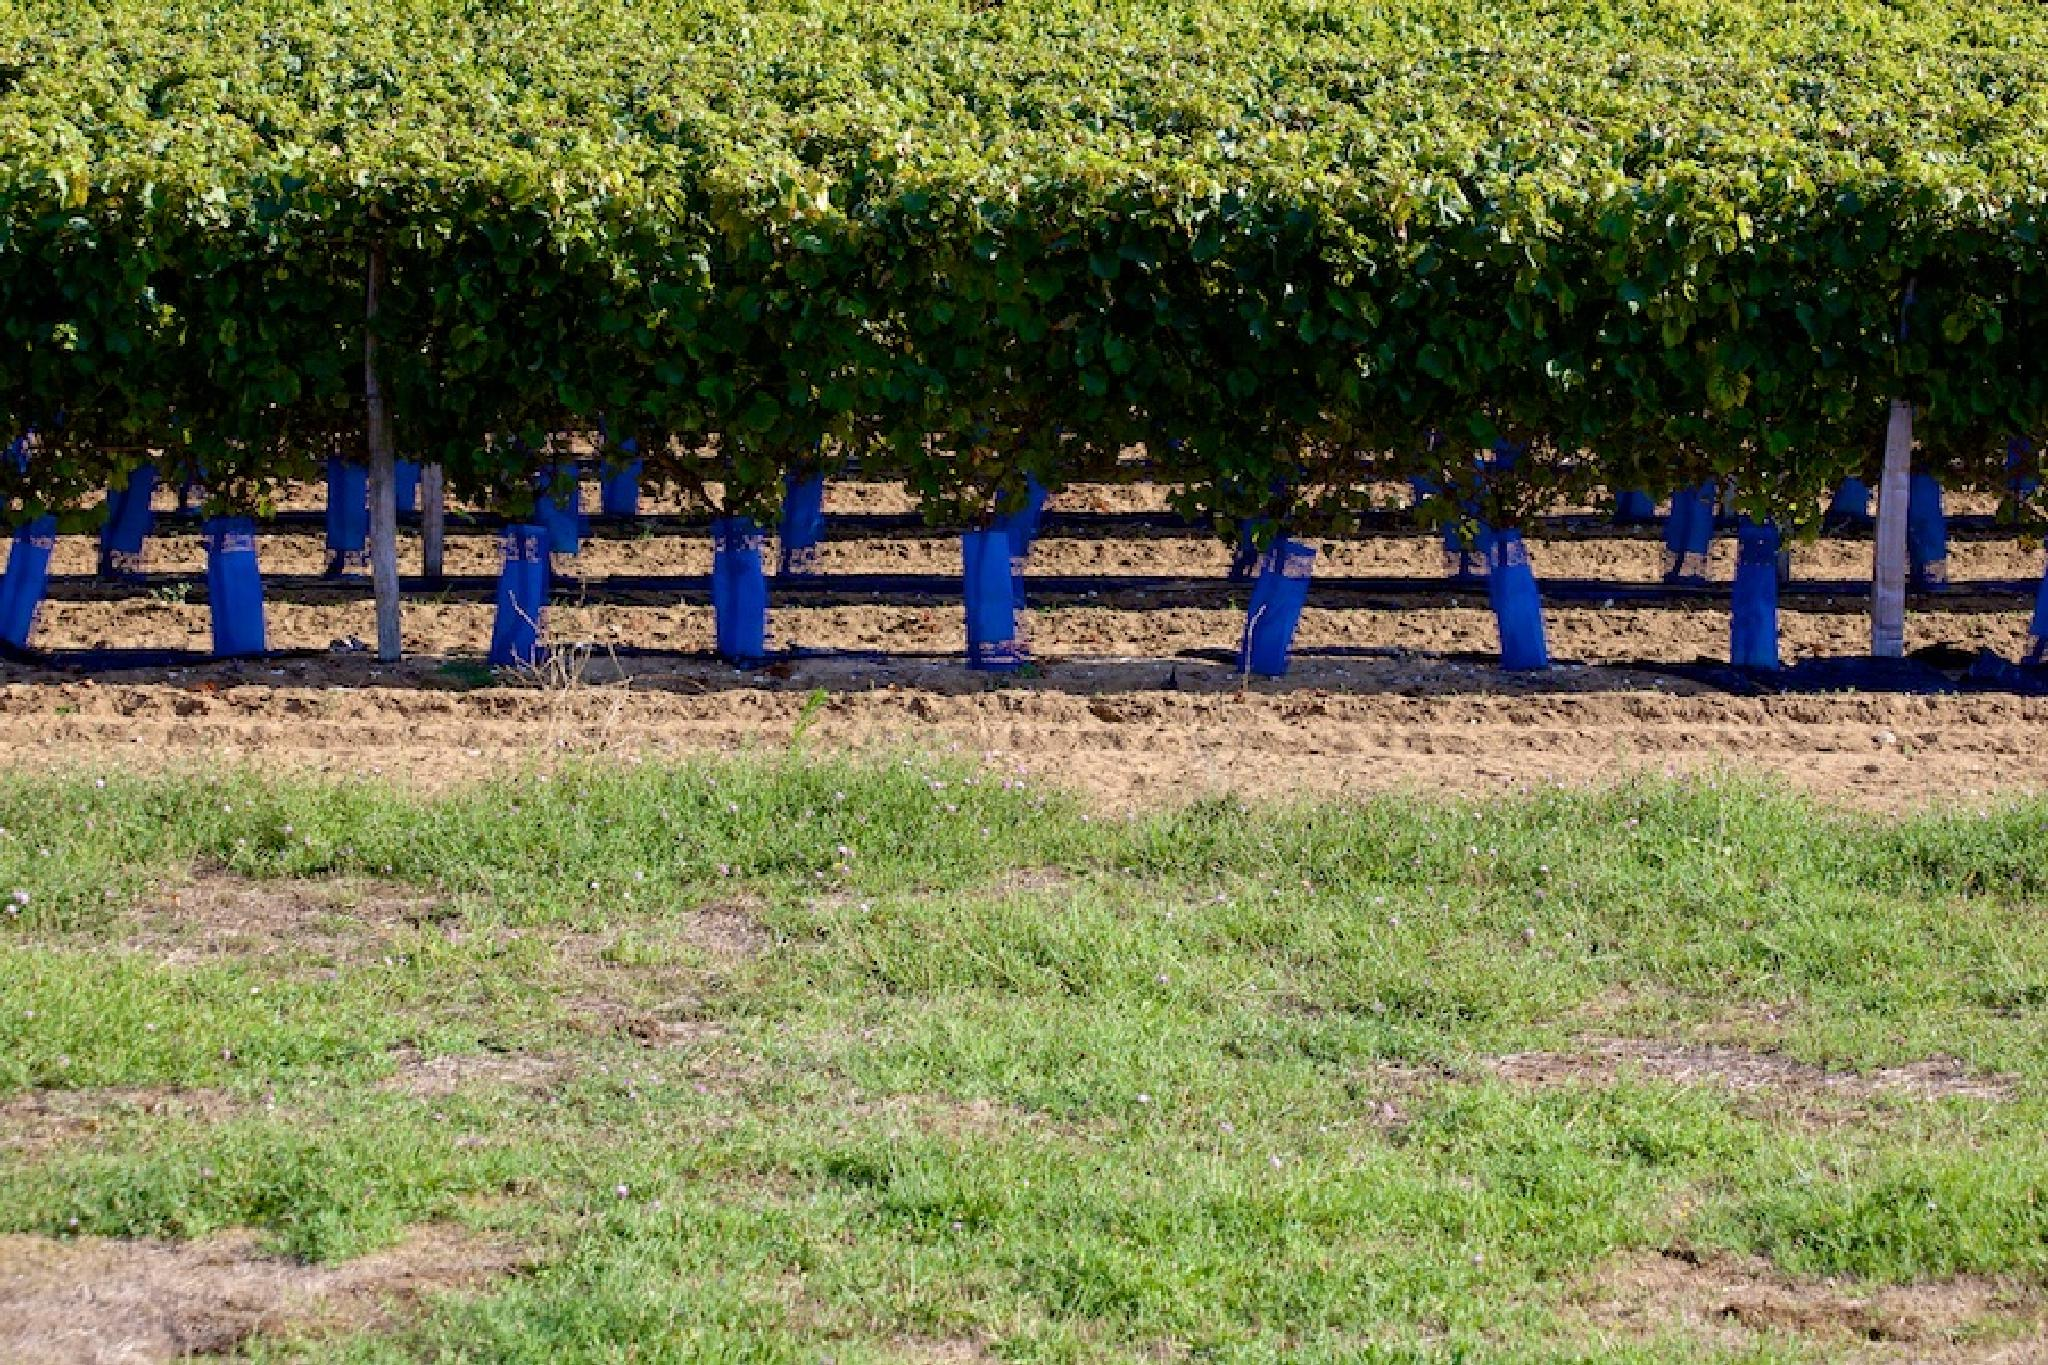 Vineyard in Green and Blue by christian.nesler1